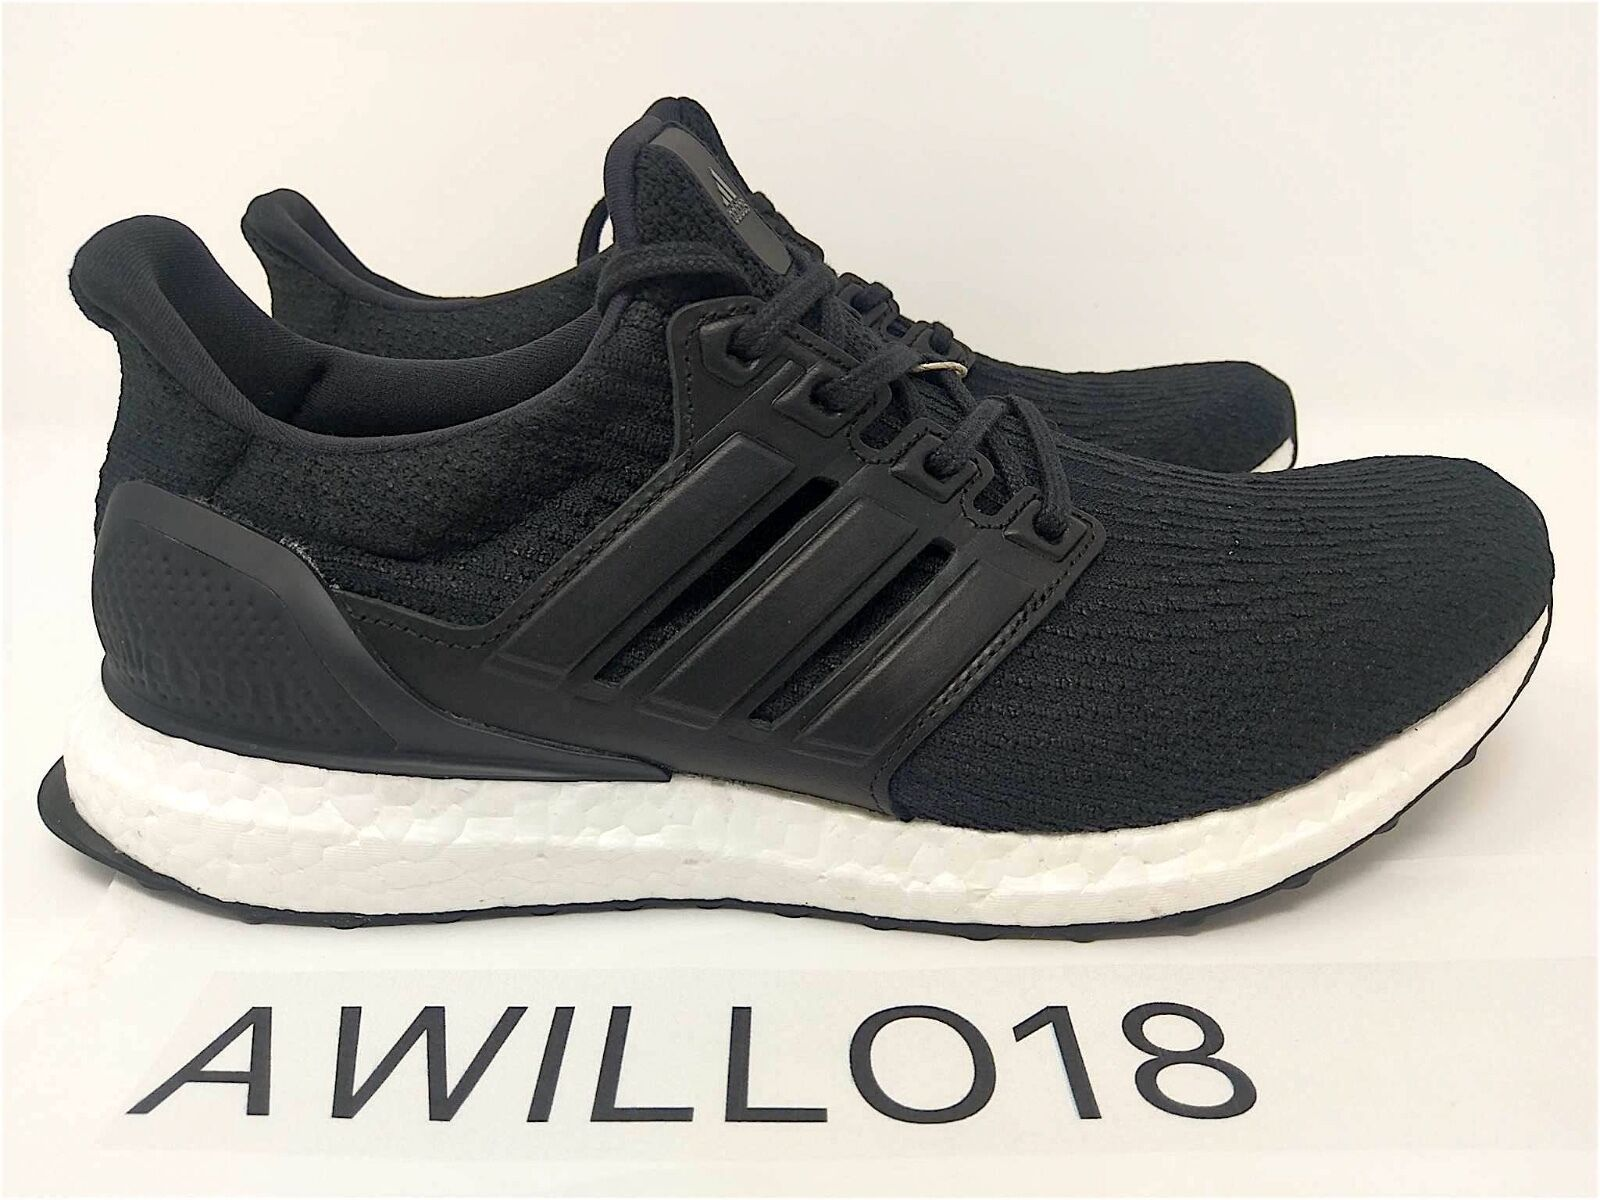 Adidas UltraBoost LTD Black Leather Luxury BA8924 US